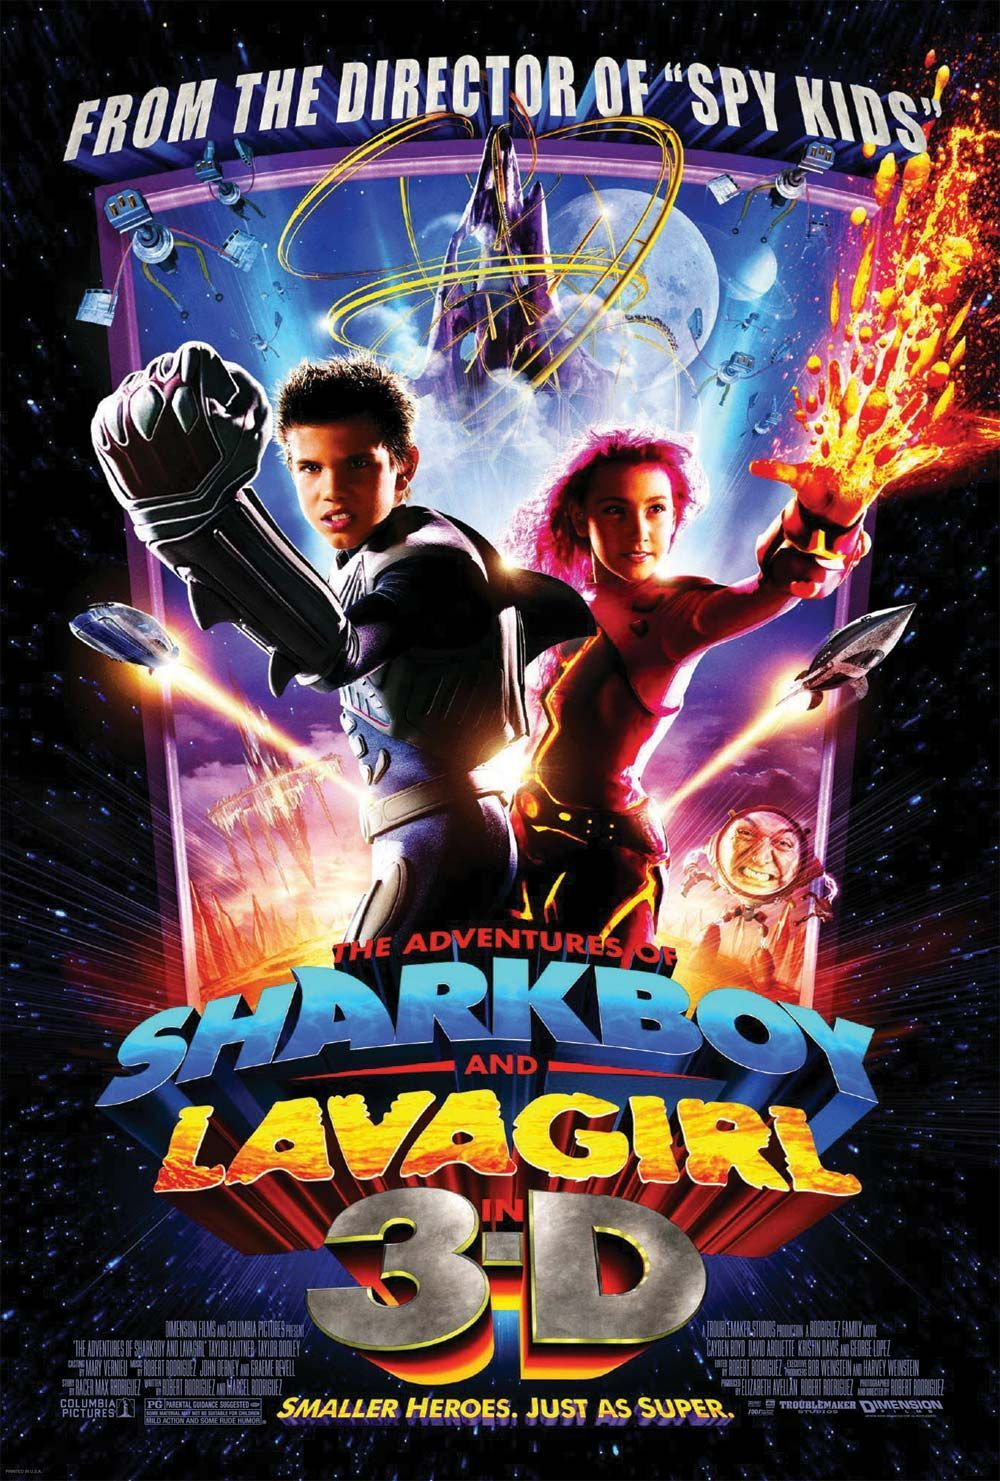 Extra Large Movie Poster Image For The Adventures Of Sharkboy And Lavagirl In 3 D Sharkboy And Lavagirl Spy Kids Movie Kids Movie Poster